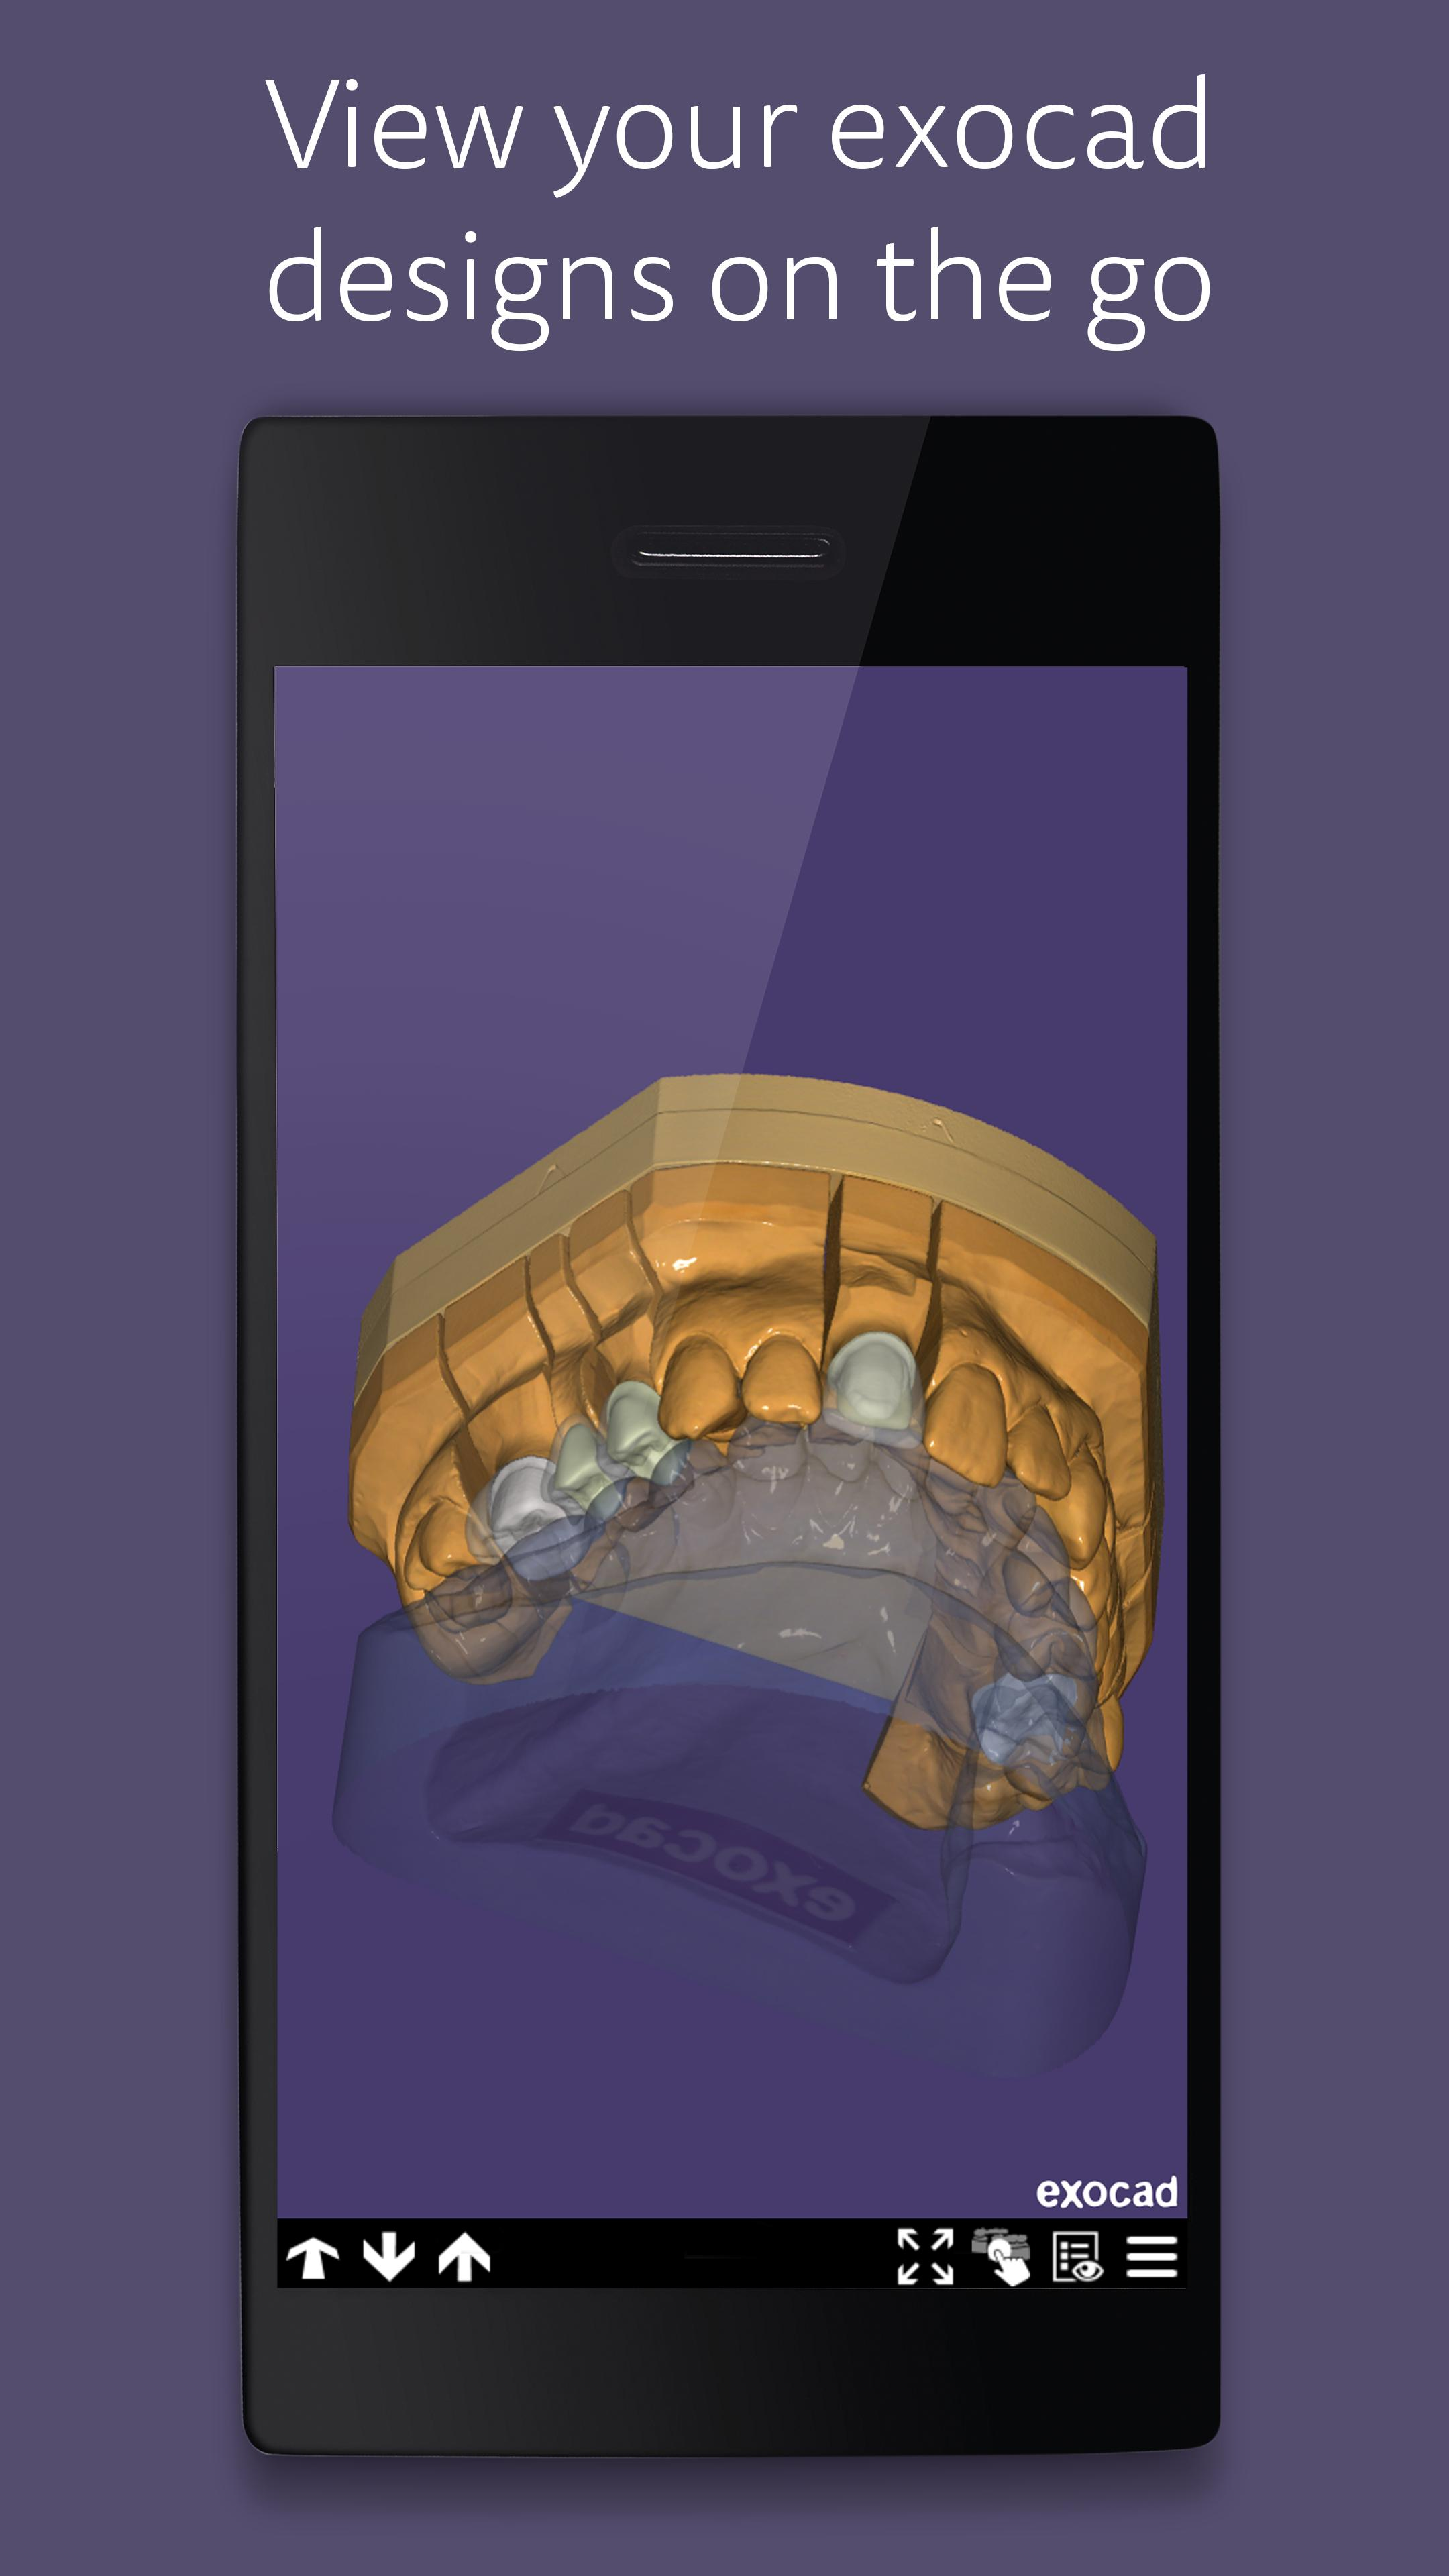 exocad view - Free STL OBJ and 3D Model Viewer for Android